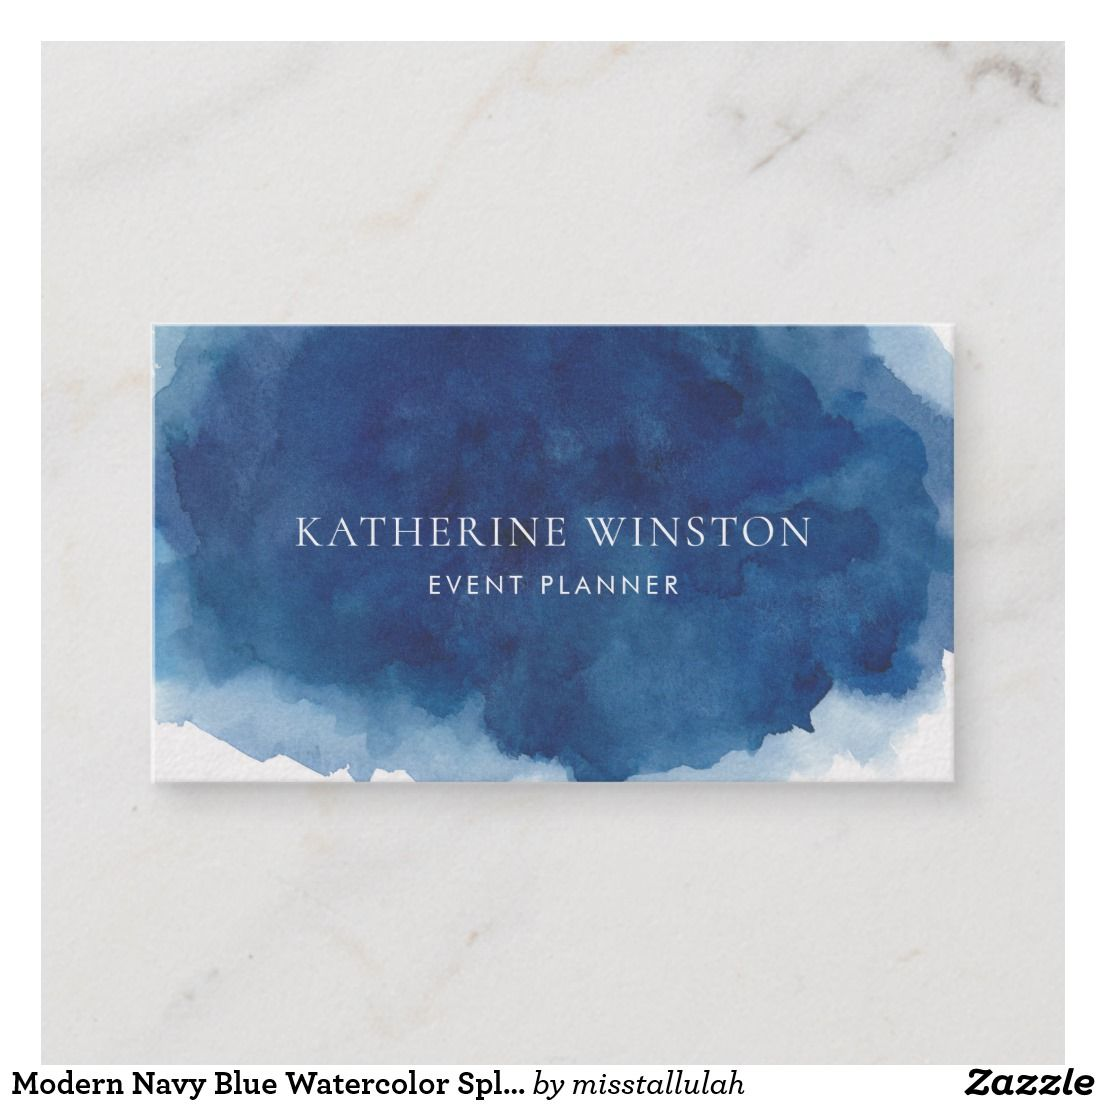 Modern Navy Blue Watercolor Splash Background Business Card